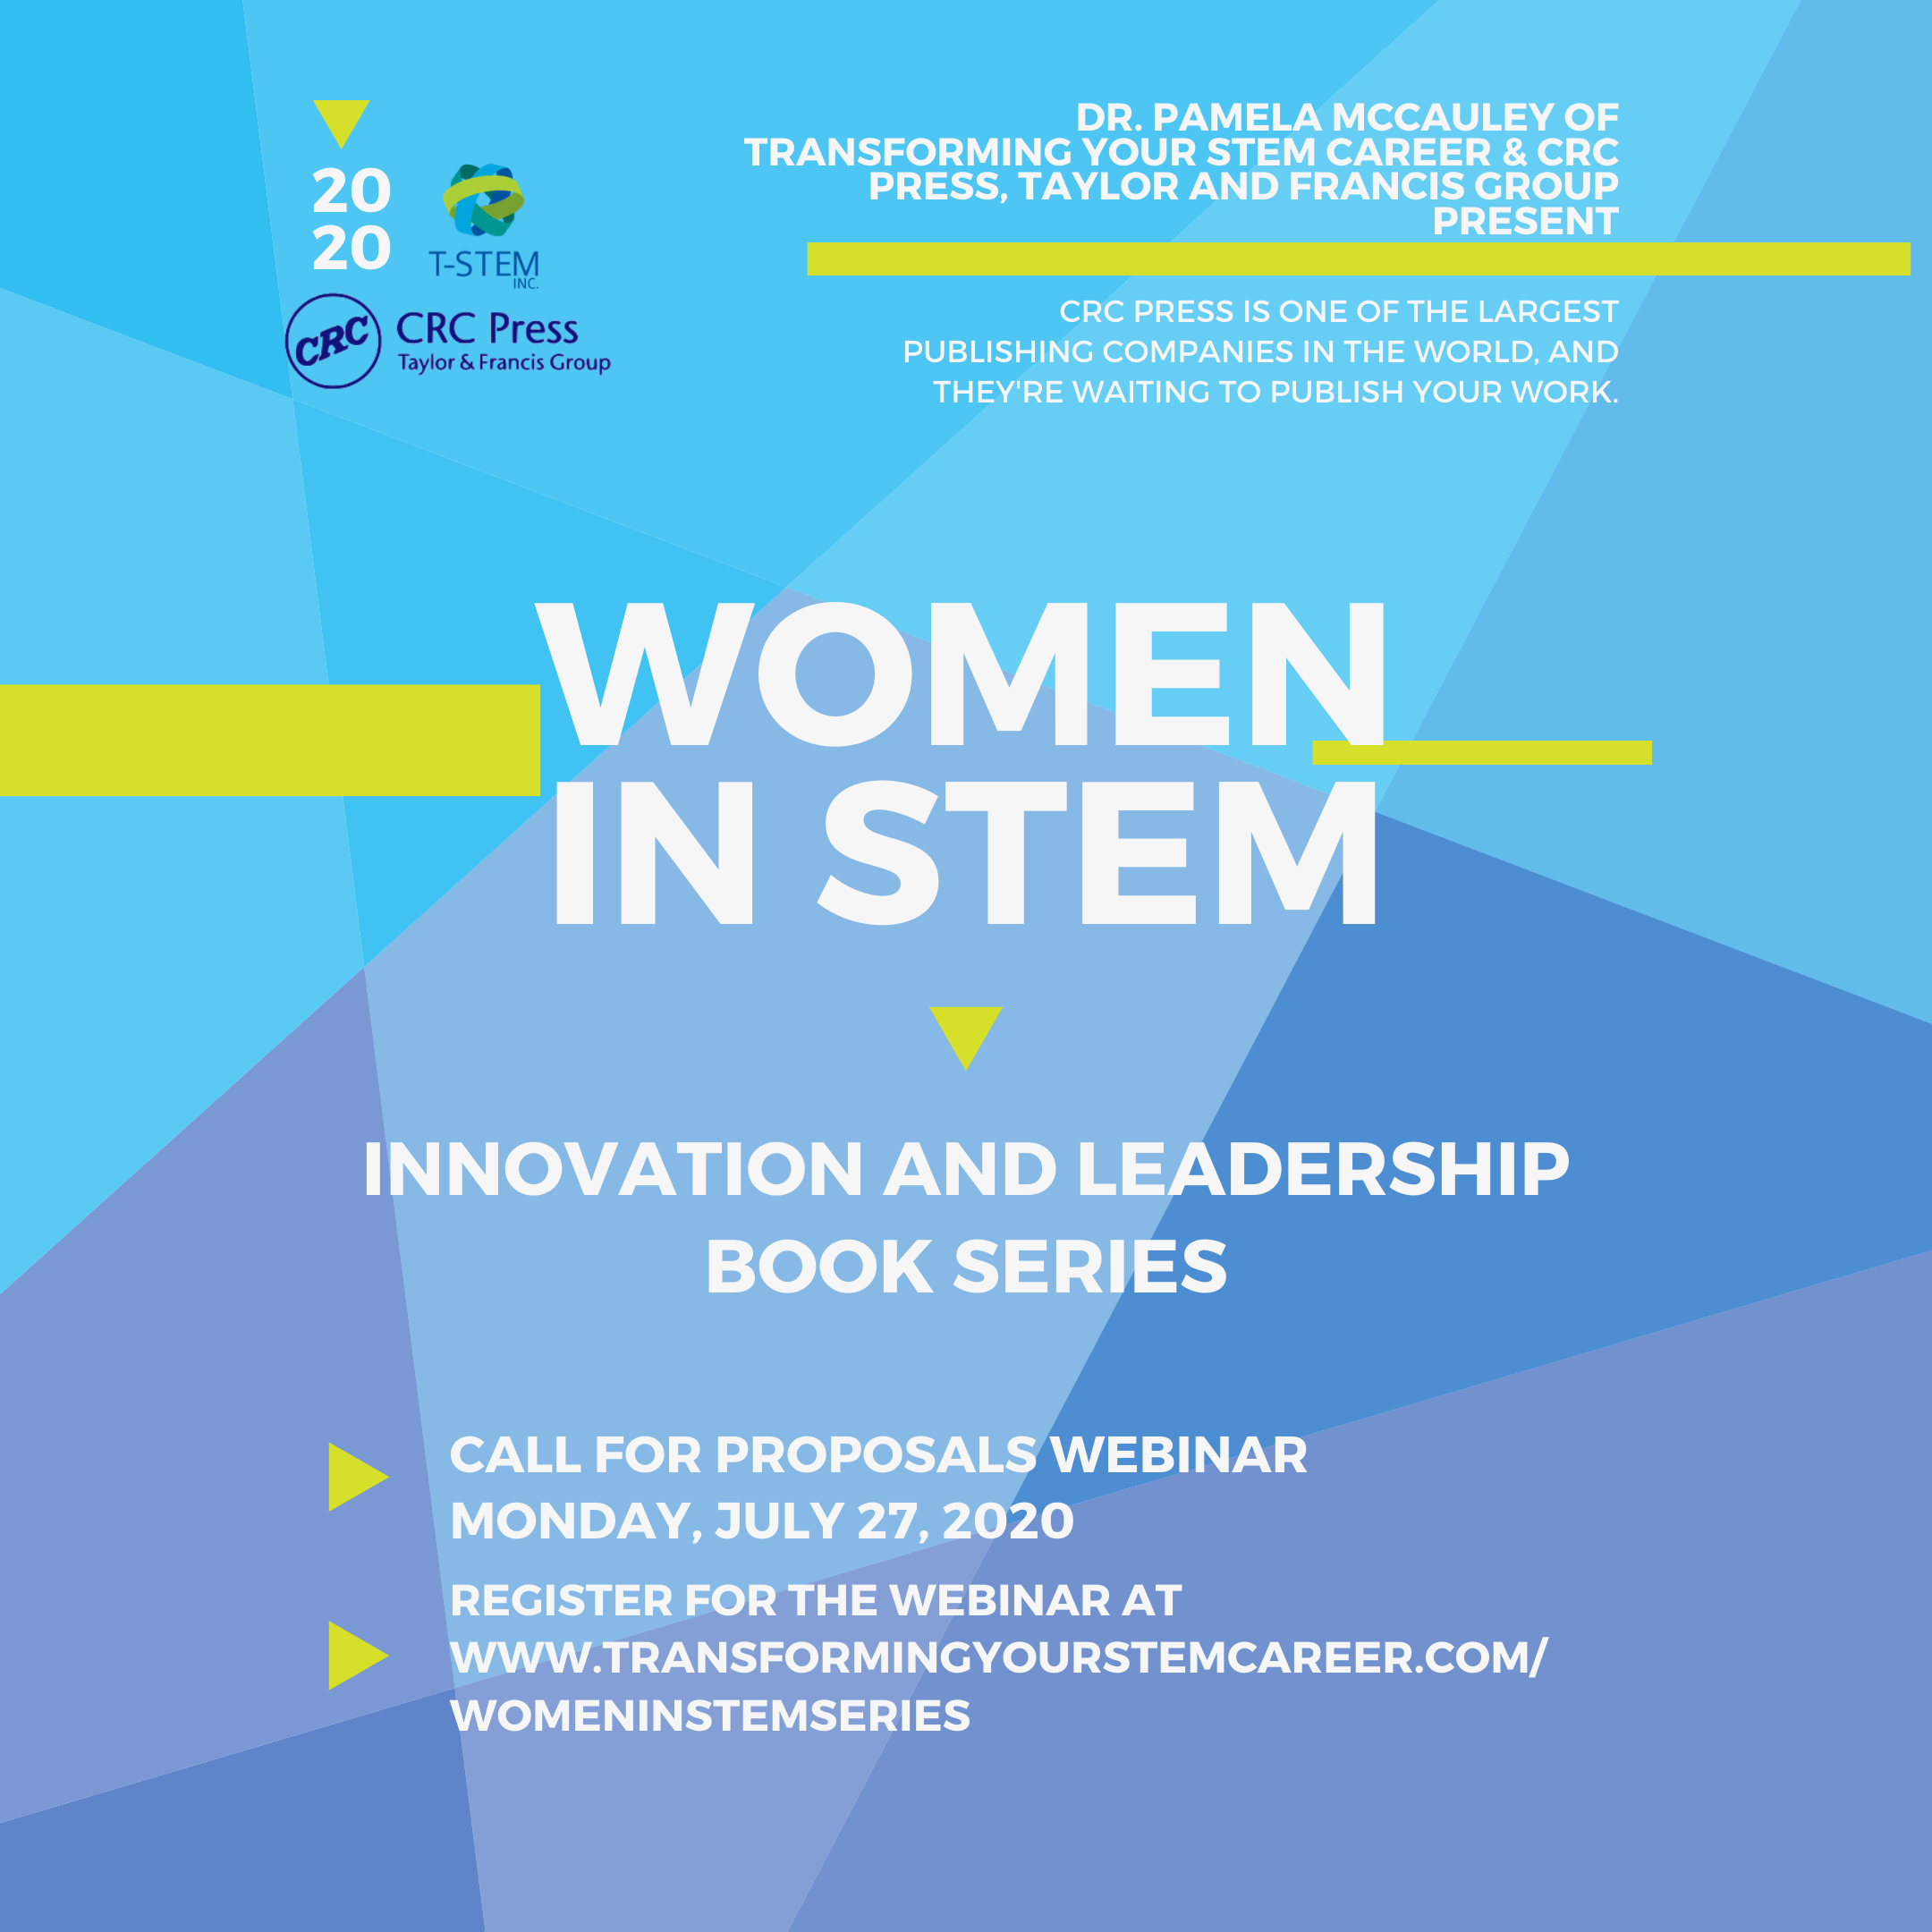 Flyer for Women in STEM Innovation and Leadership Book Series